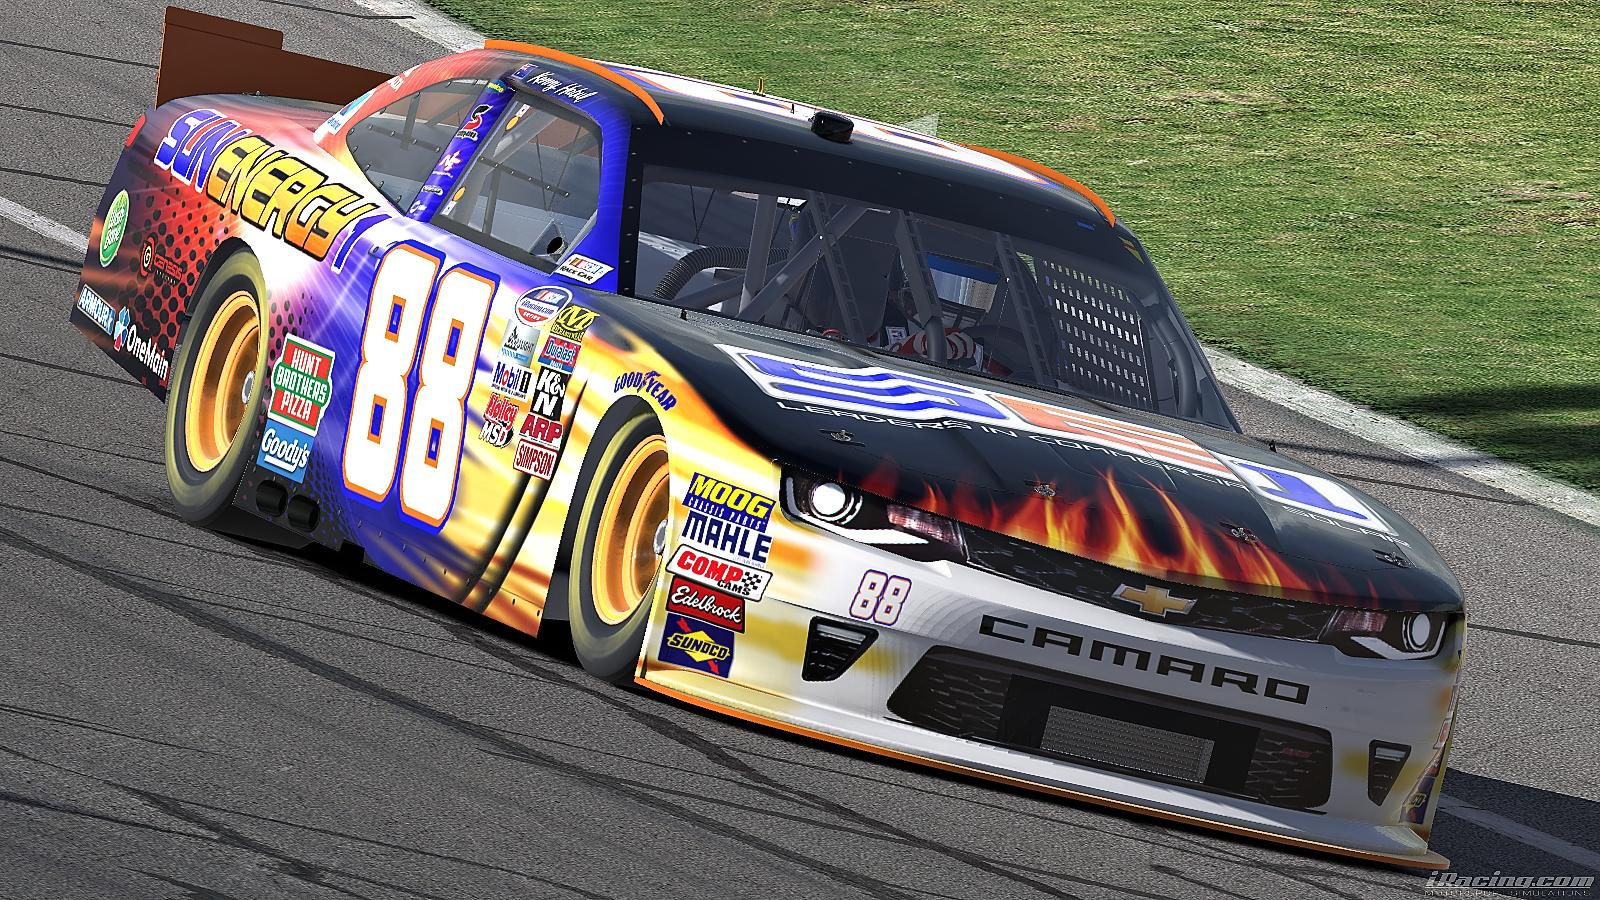 Preview of 2016 Kenny Habul Sun Energy 1 Road America by Ben Horton